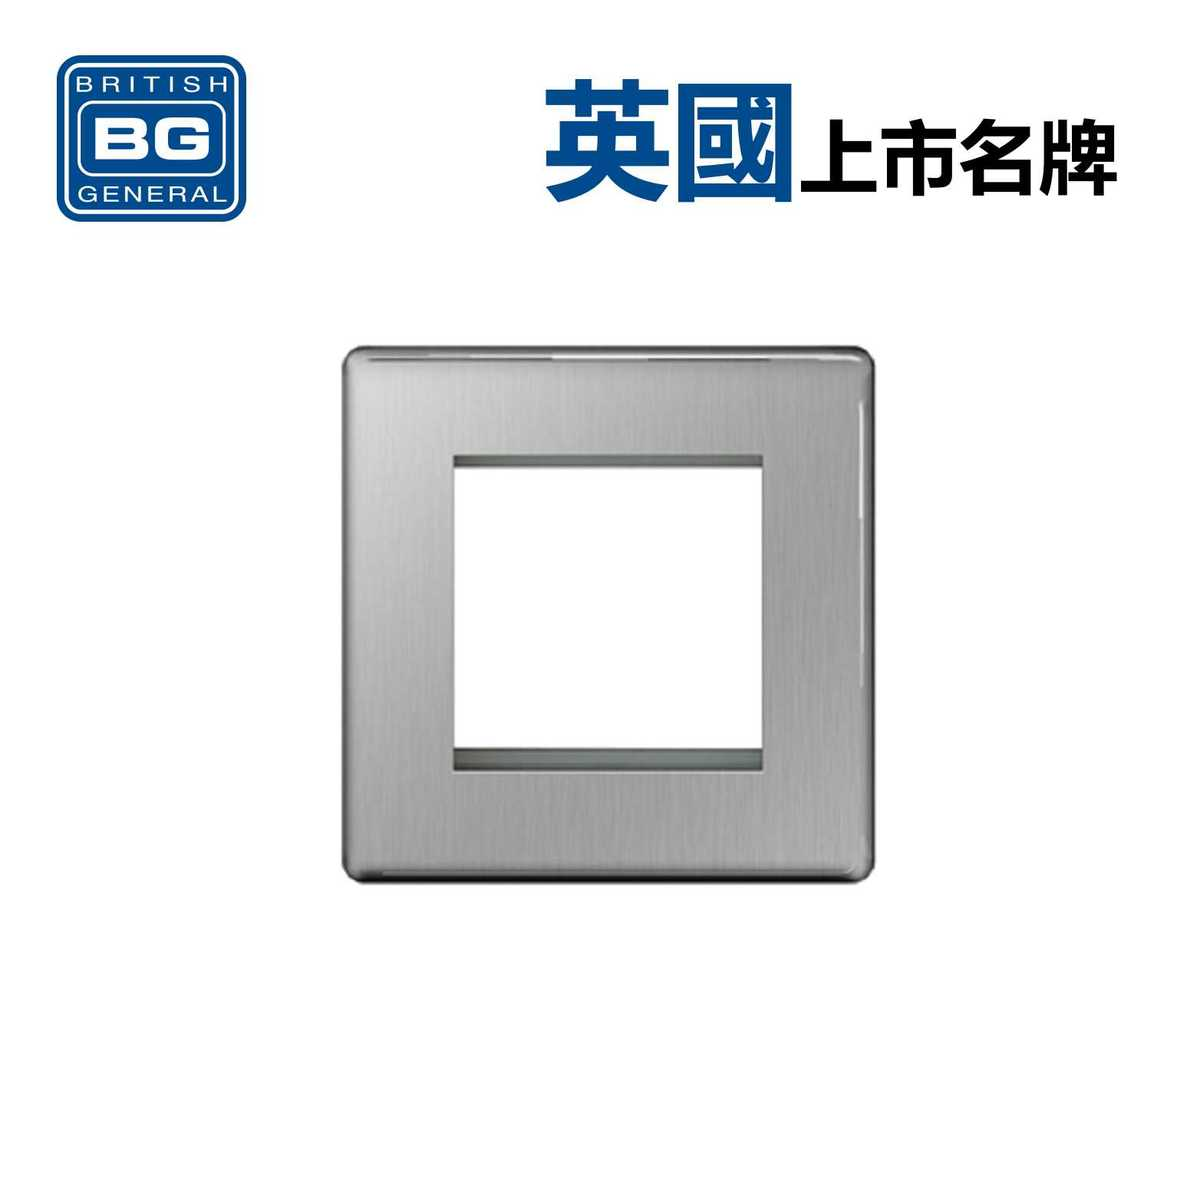 1-Gang Square Plate - Double Opening -Flatplate Brushed Steel (Model: FBSEMS2)